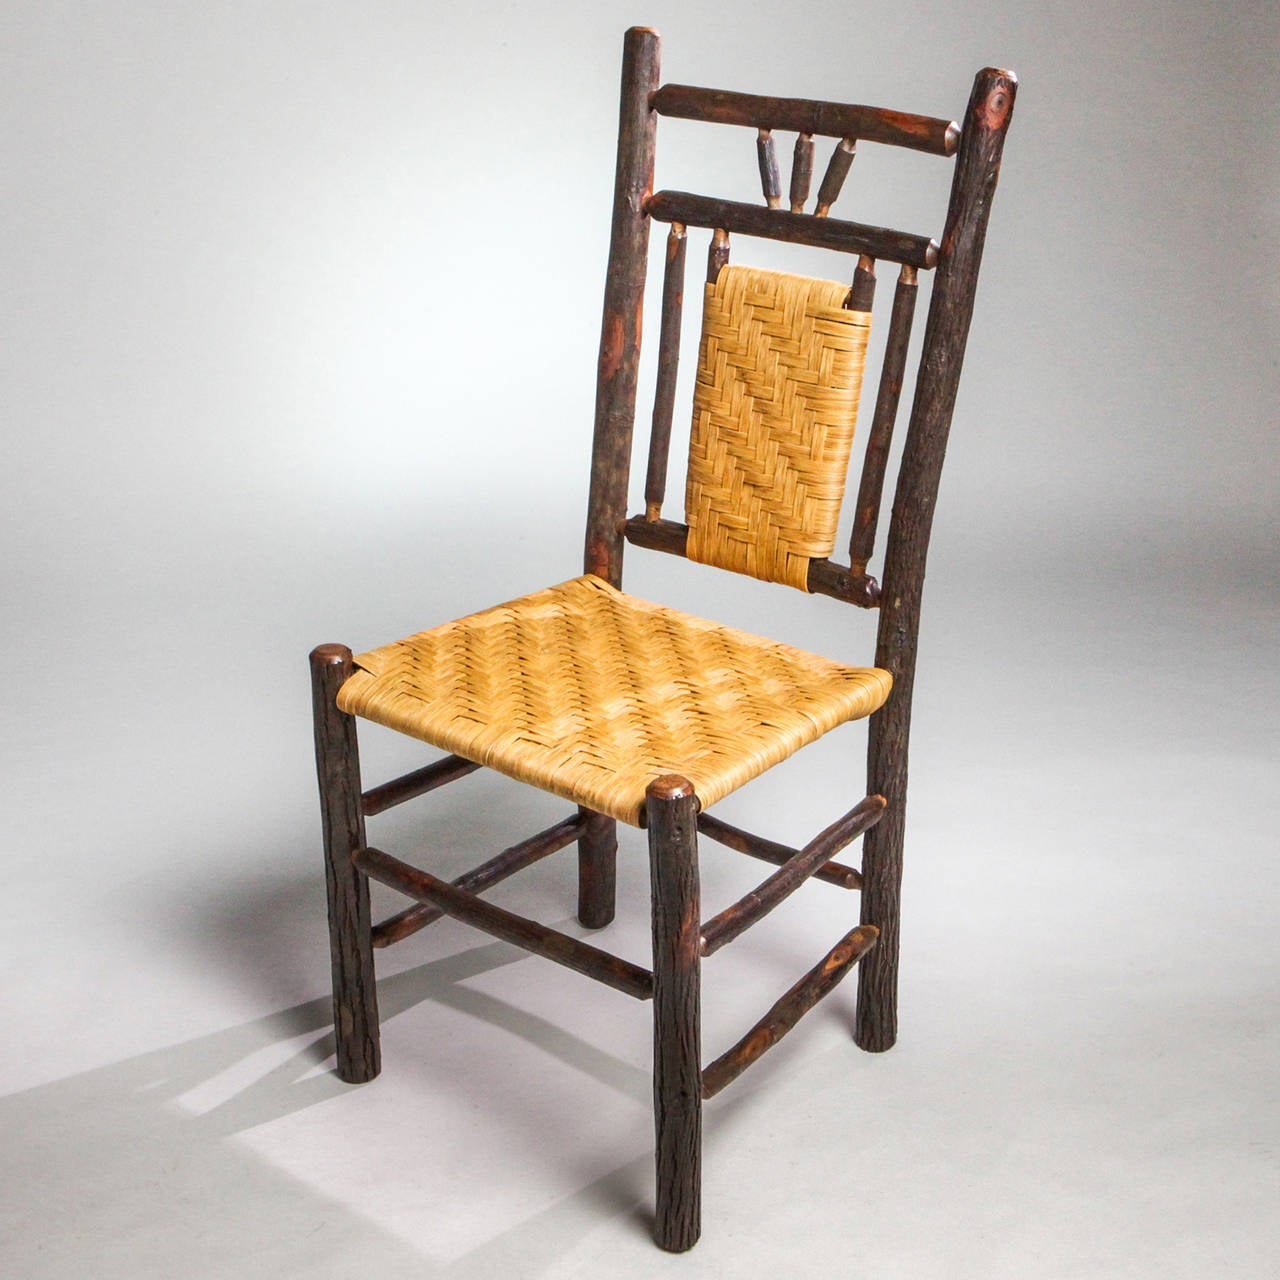 adirondack chairs for sale oversized outdoor woven seat chair at 1stdibs